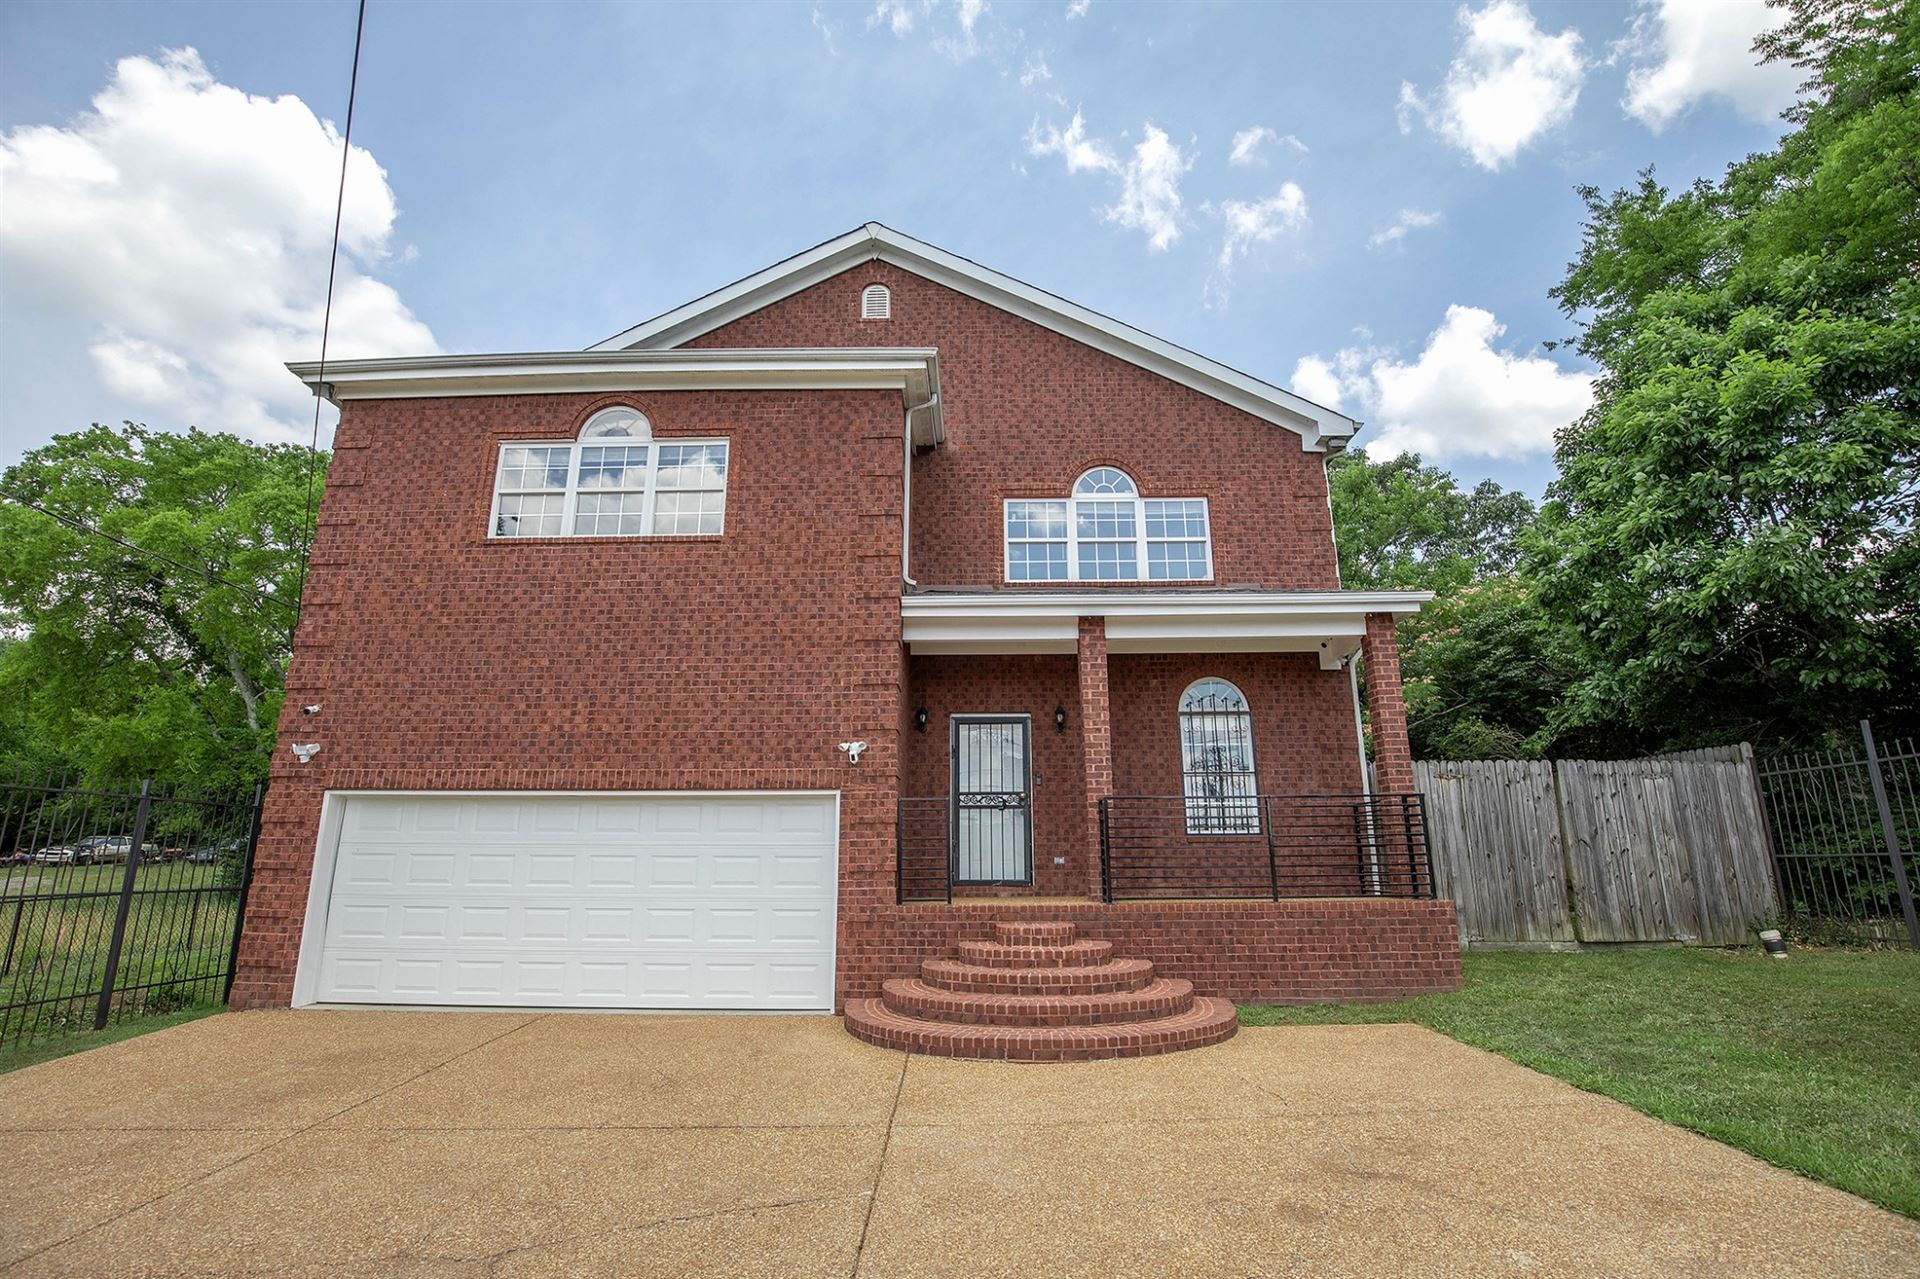 Photo of 925 Youngs Ln, Nashville, TN 37207 (MLS # 2266336)